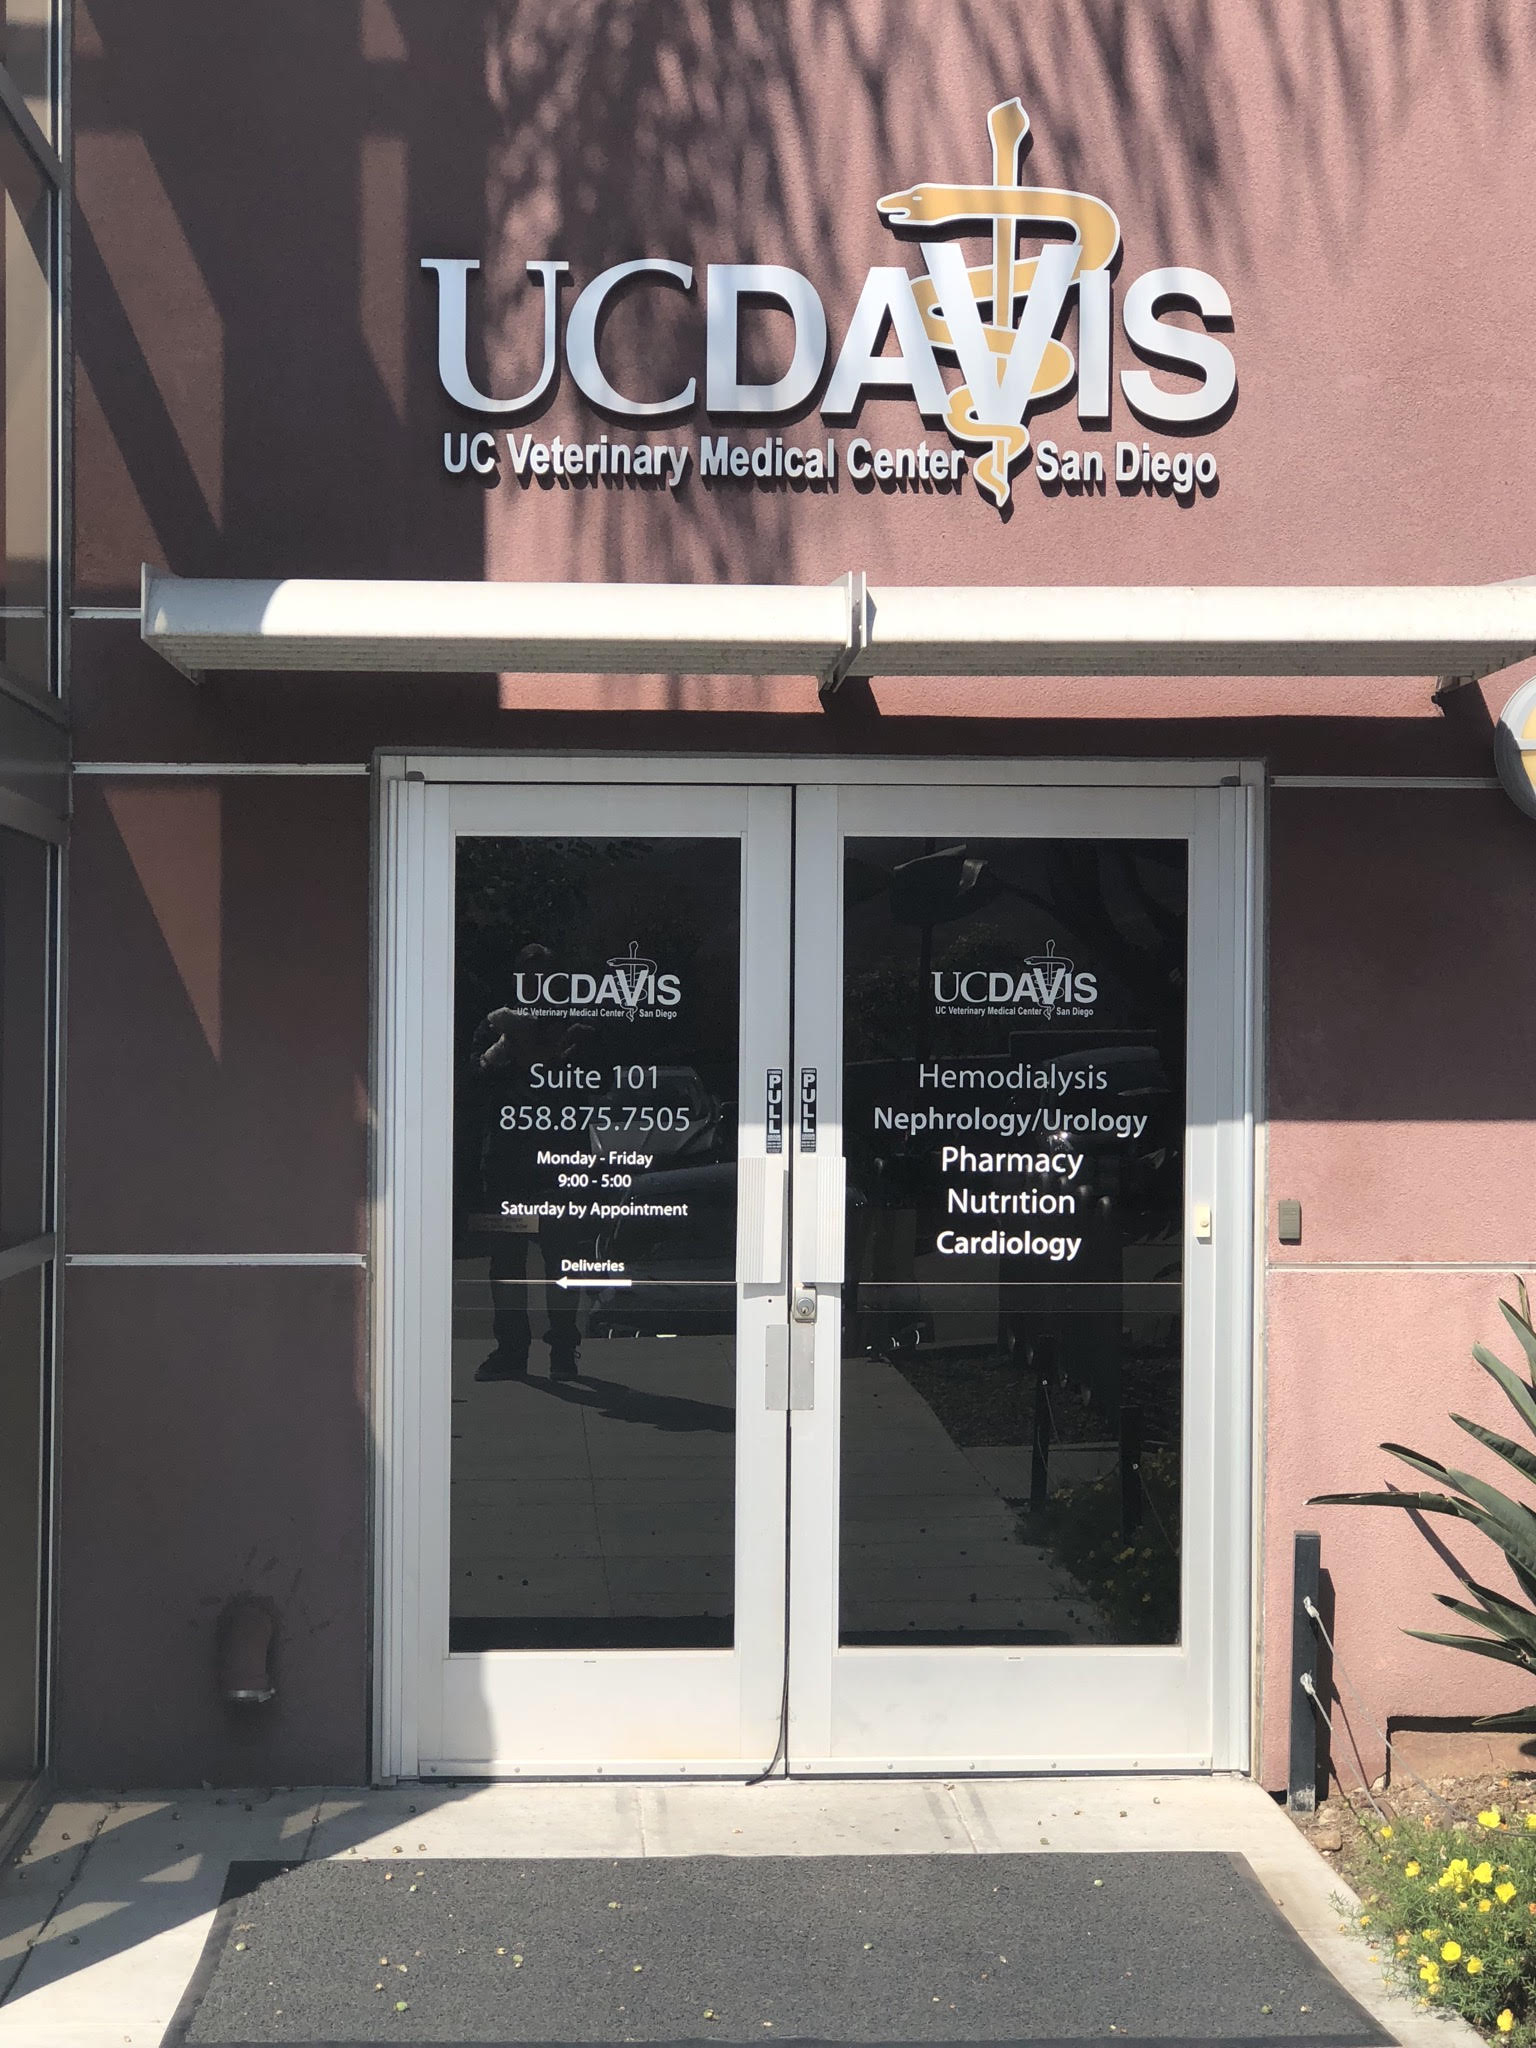 UC Davis Veterinary Medical Center in San Diego, CA